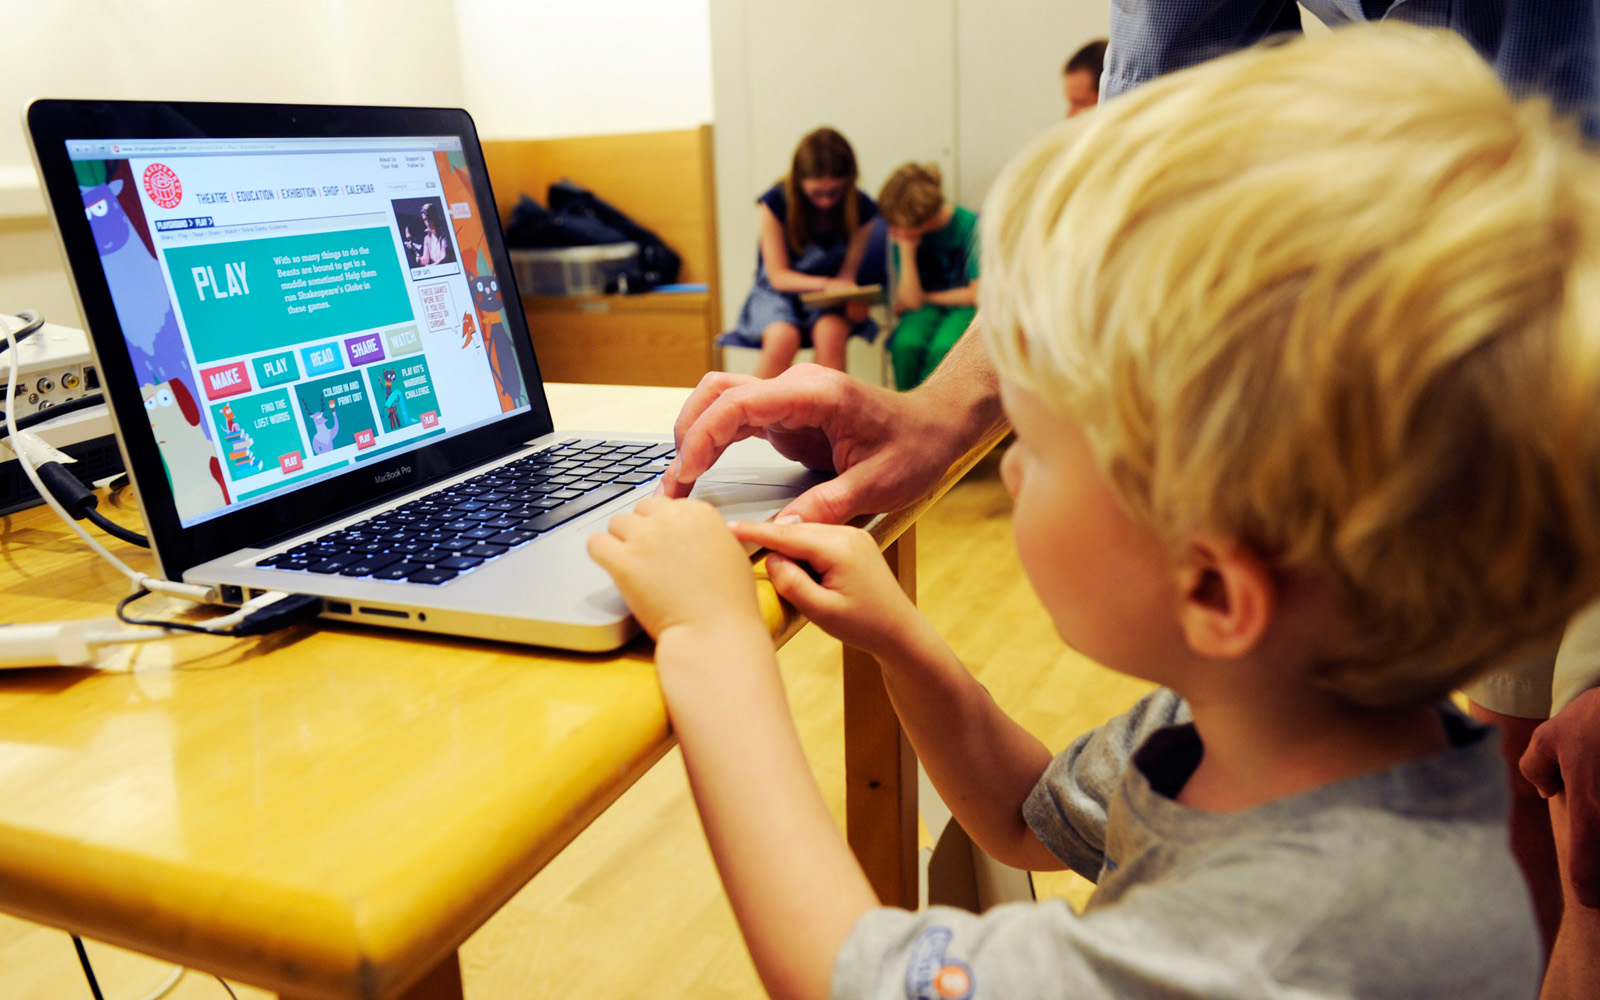 A young boy uses a laptop to browse learning resources